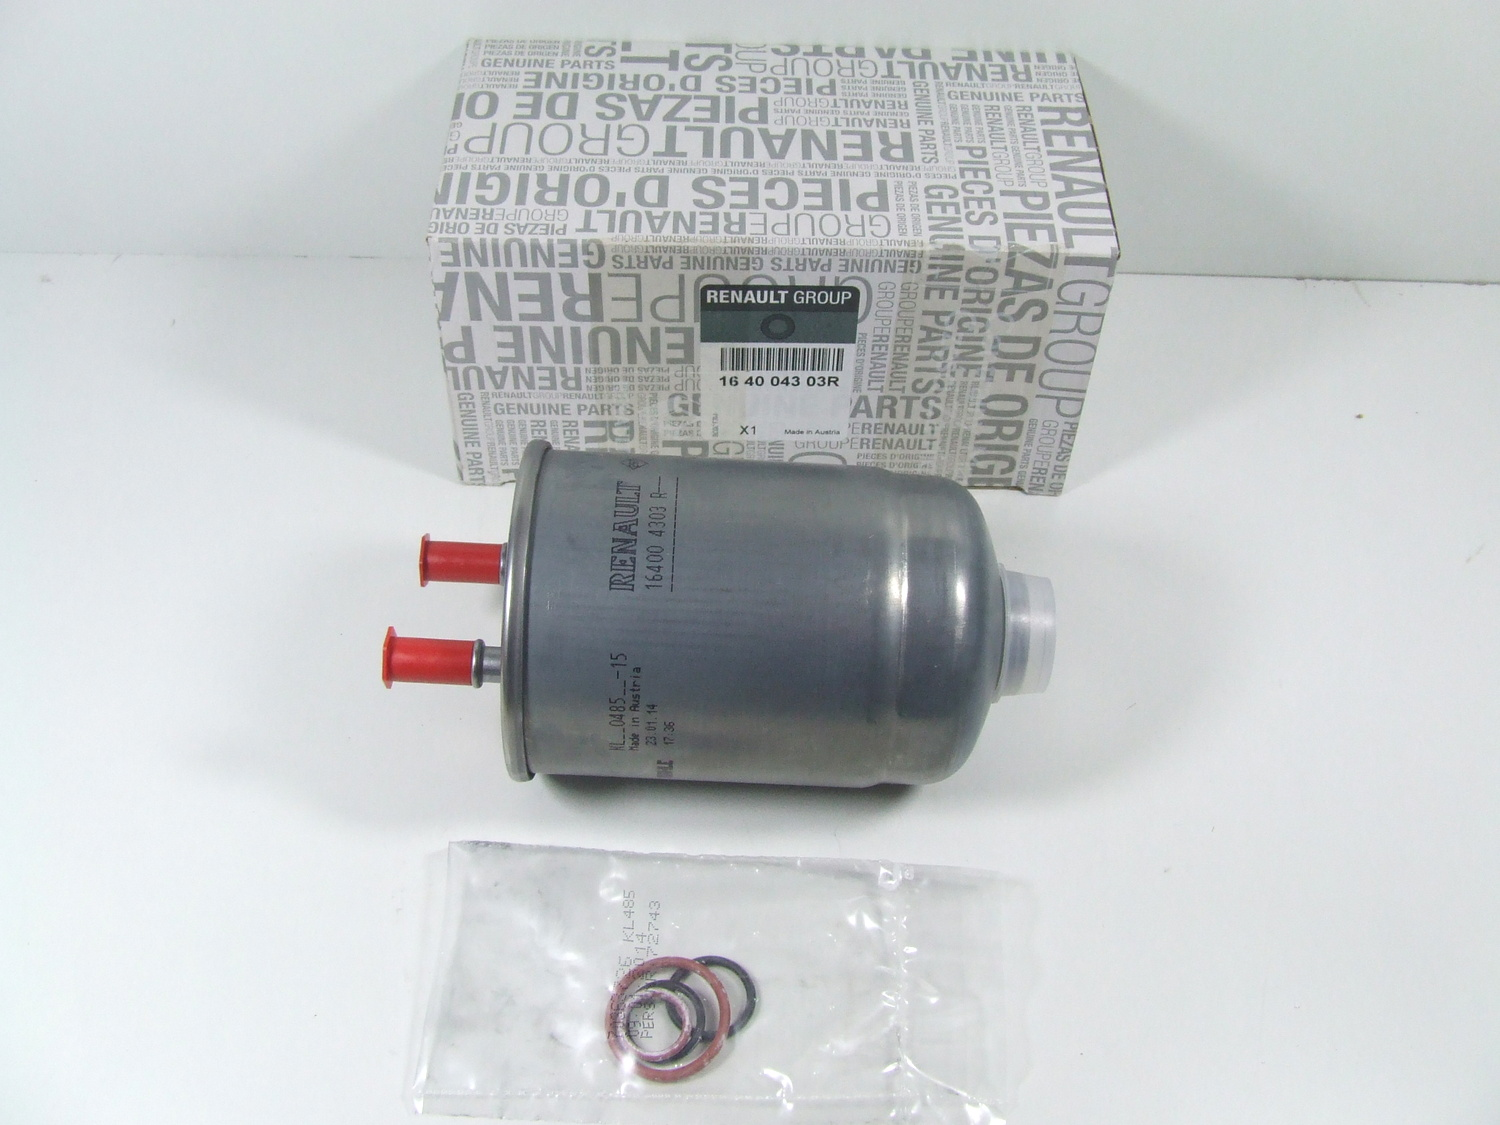 Fuel Filter Renault Megane Iii Scenic 16 20 Dci Original 2015 6 7 Replacement 164004303r Filters Service Moto Dynamic